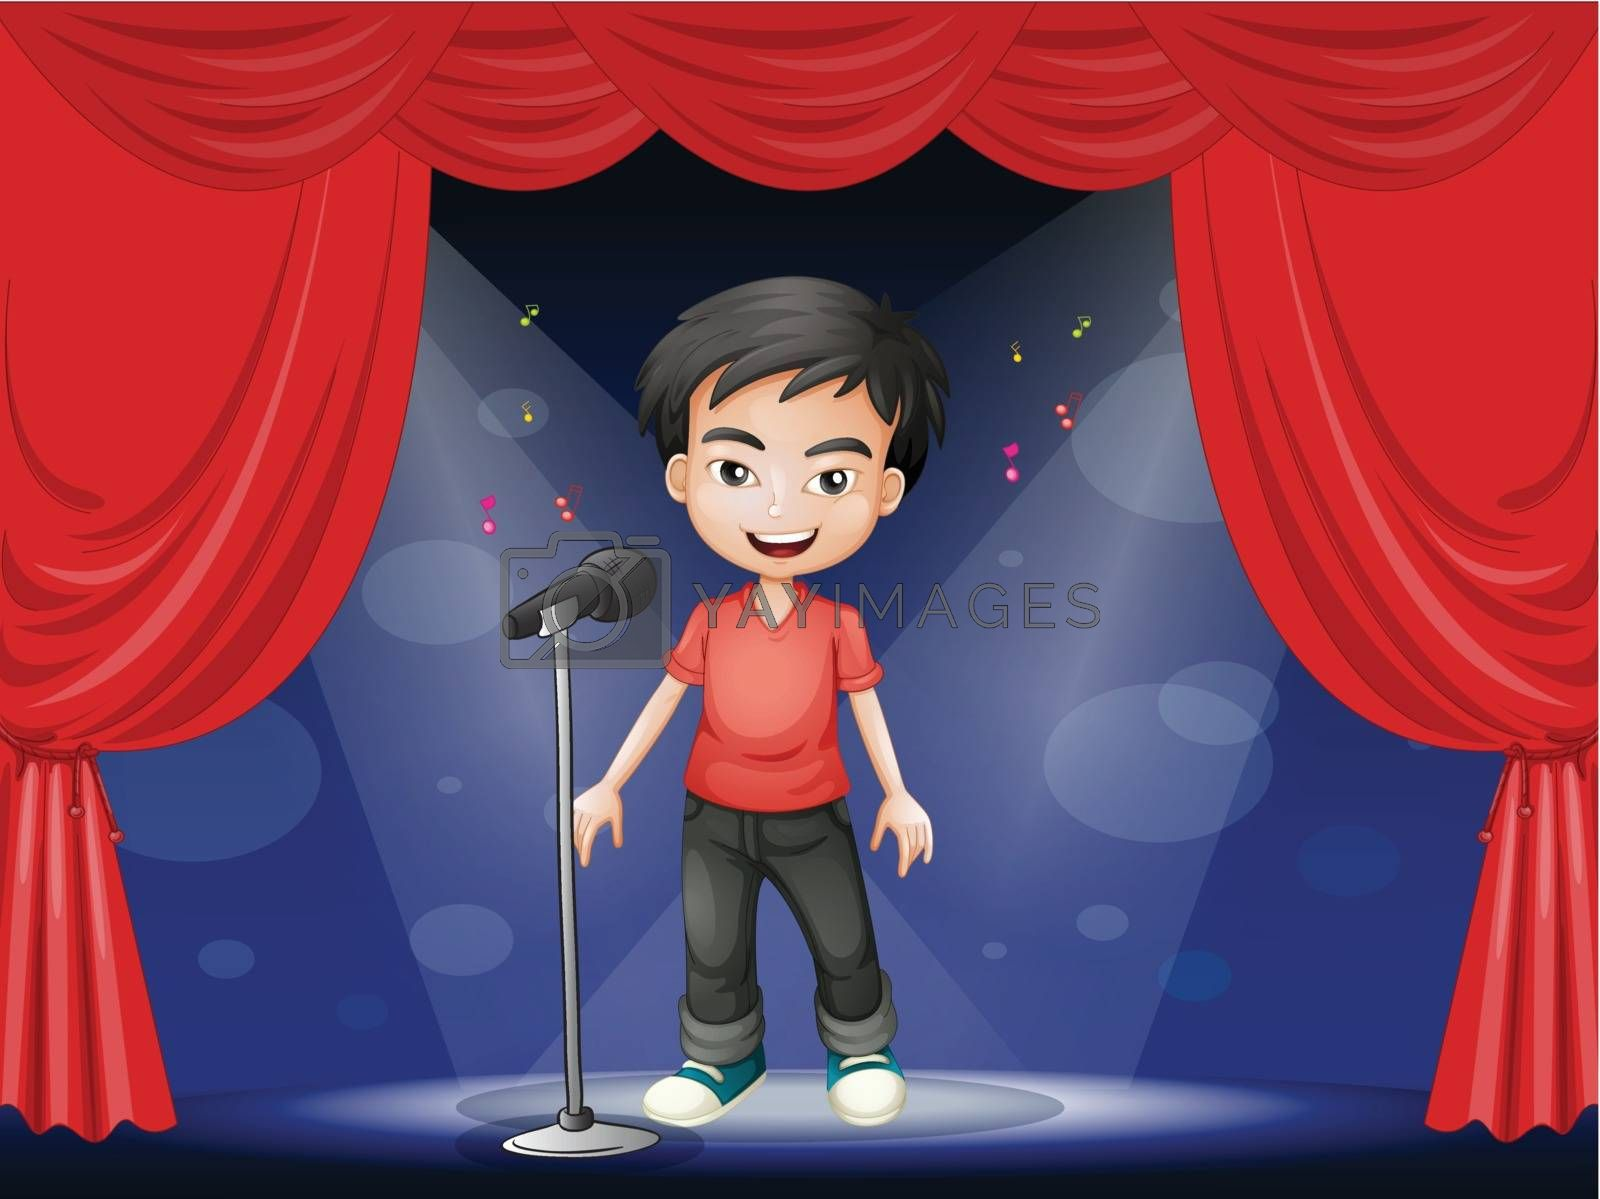 Illustration of a young man performing at the stage